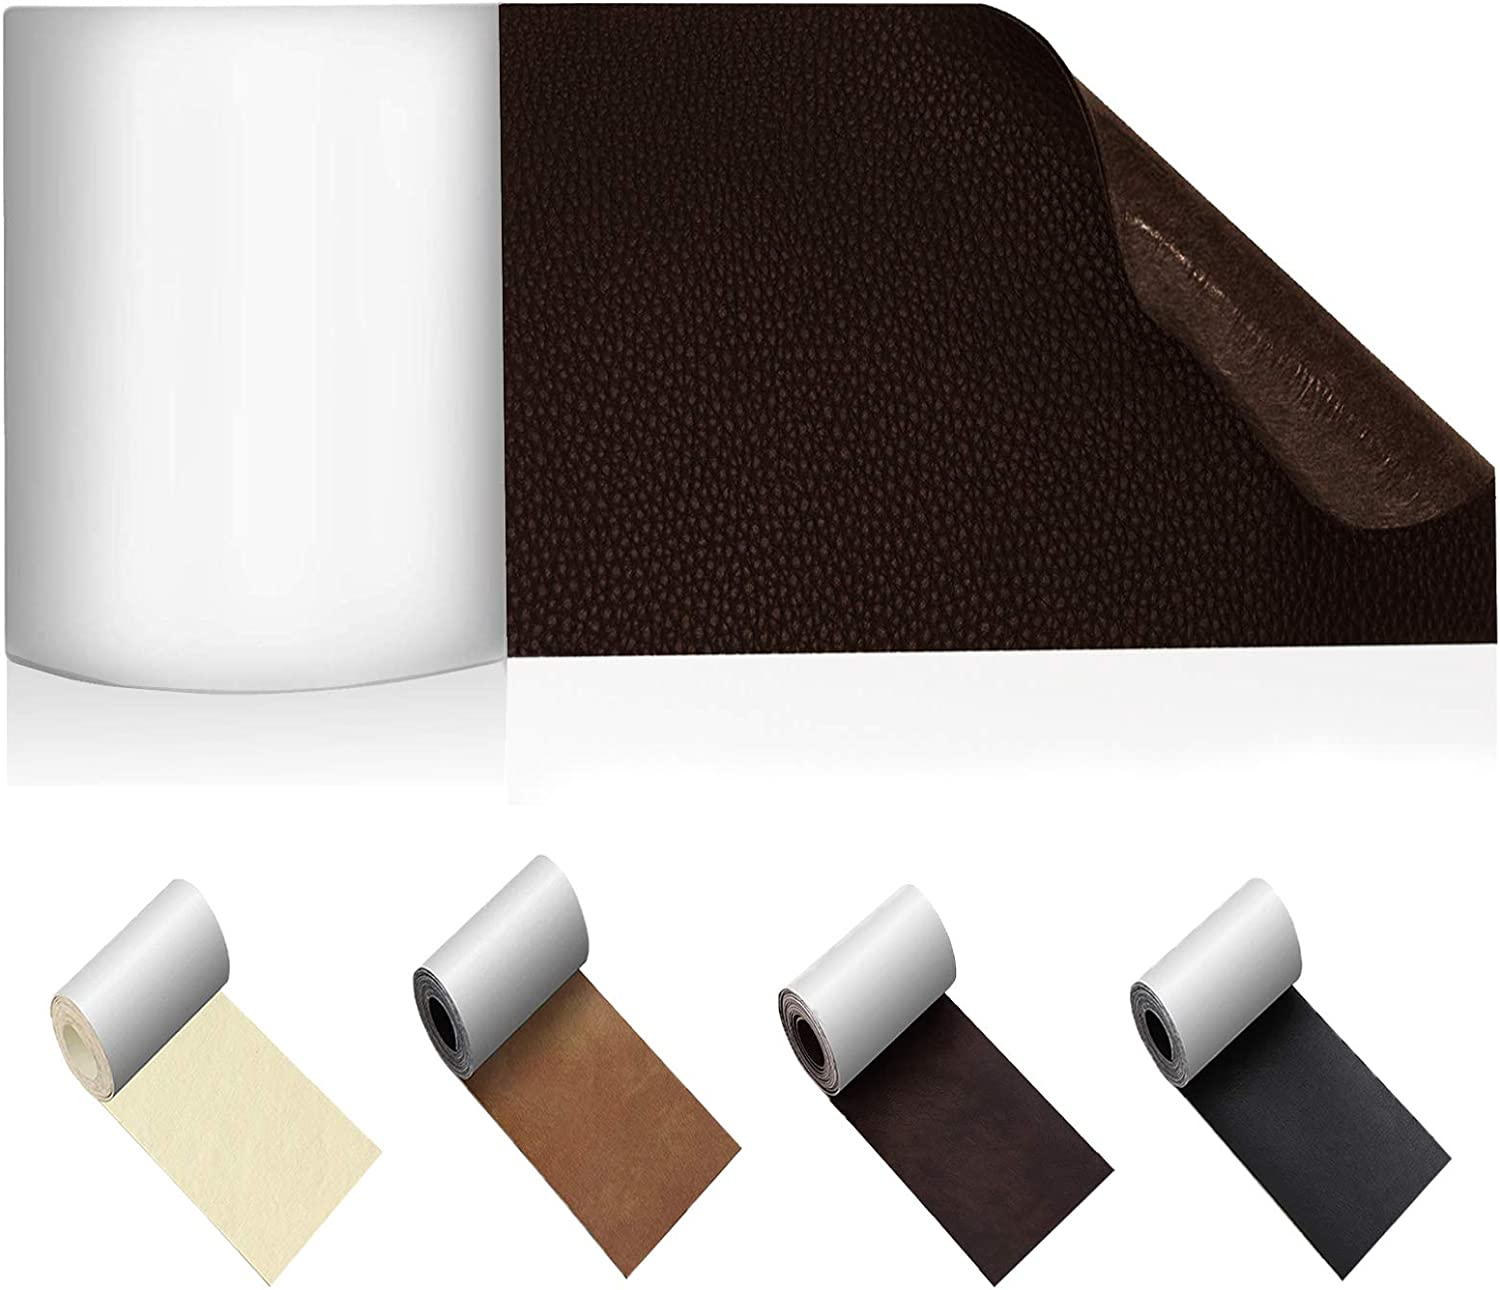 Leather Repair Patch, Leather Tape, Self-Adhesive Leather Patches for Couch, Sofa, Furniture, Car Seat, Jacket   No Heat Required Leather Patch 3 x 62 inch -Dark Brown